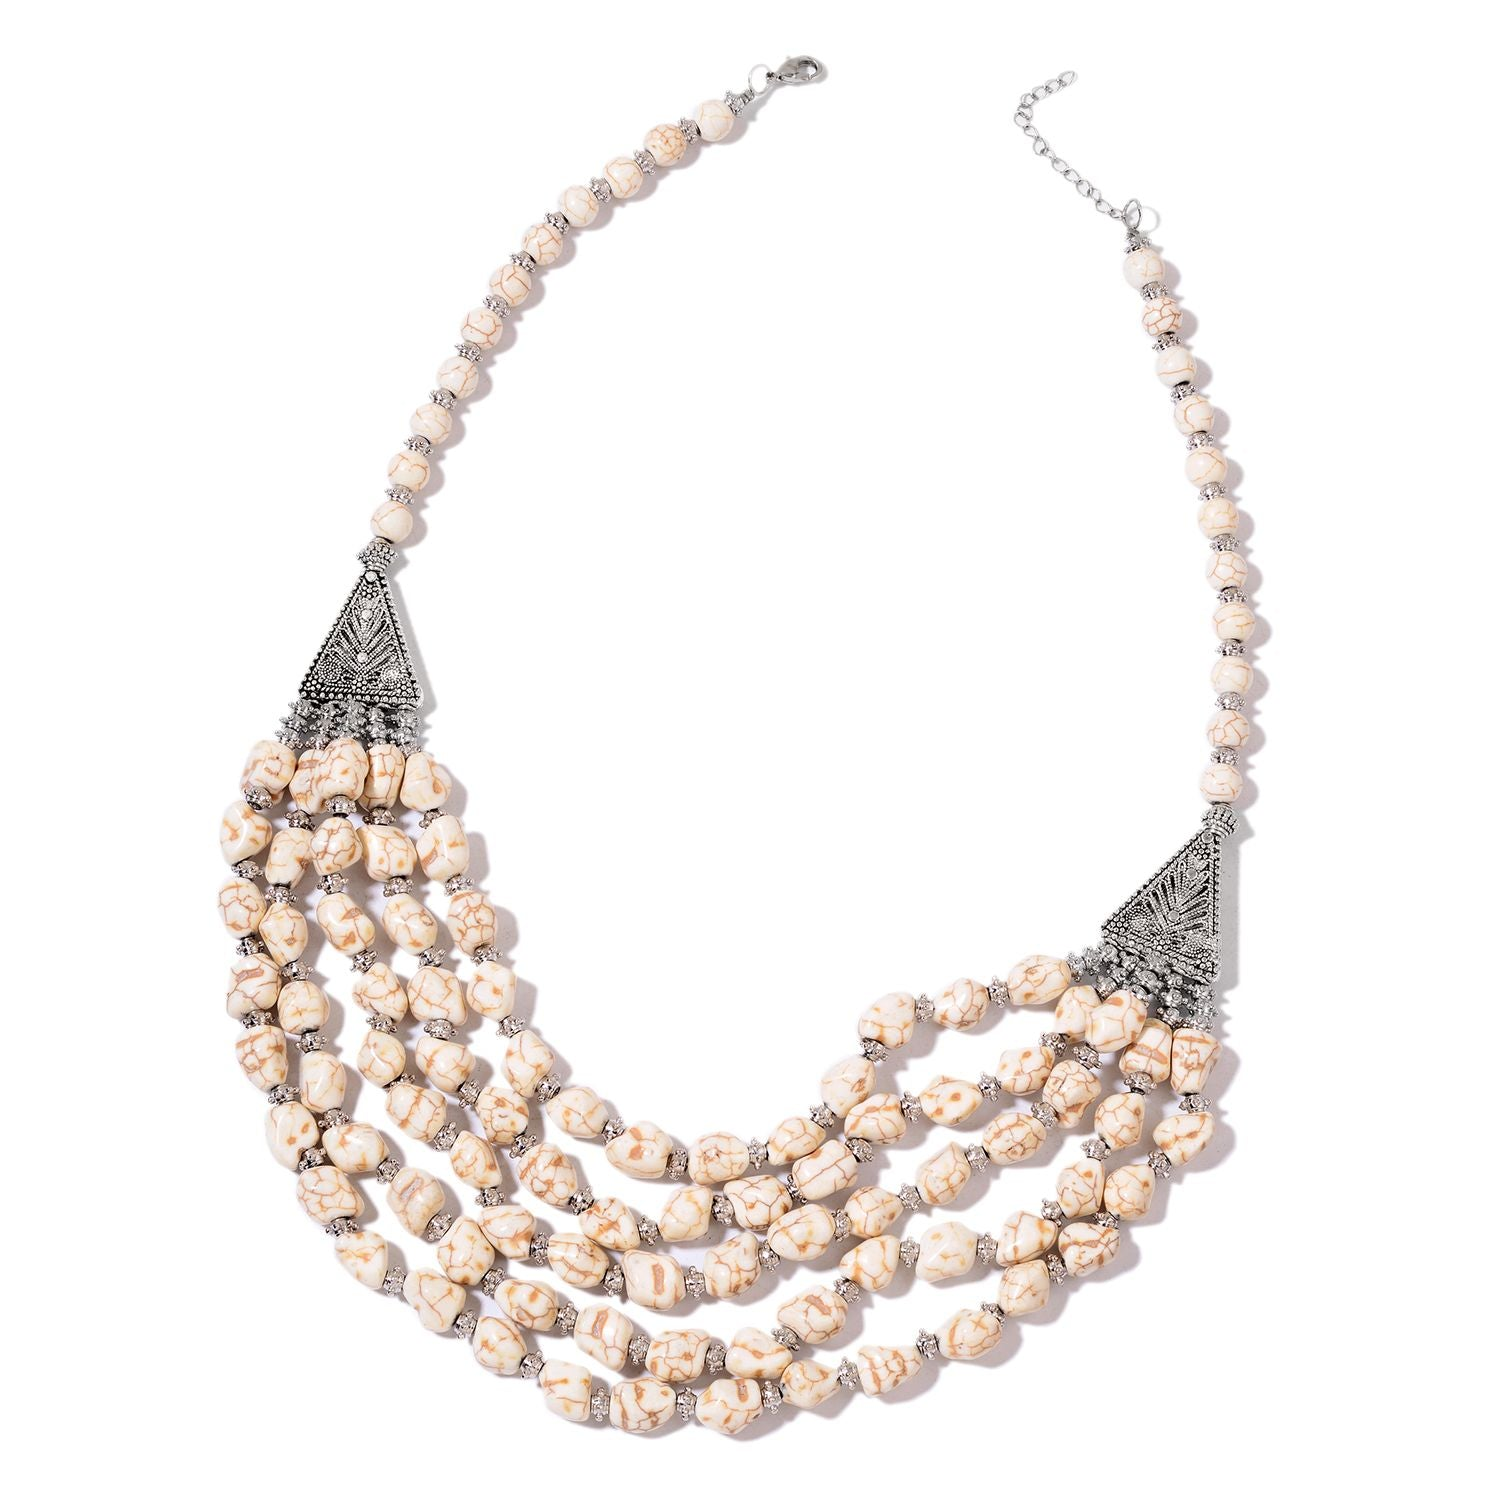 White Howlite Beads Triple Row Drape Necklace in Silver-tone TGW 970.00 cts - Houzz of DVA Boutique